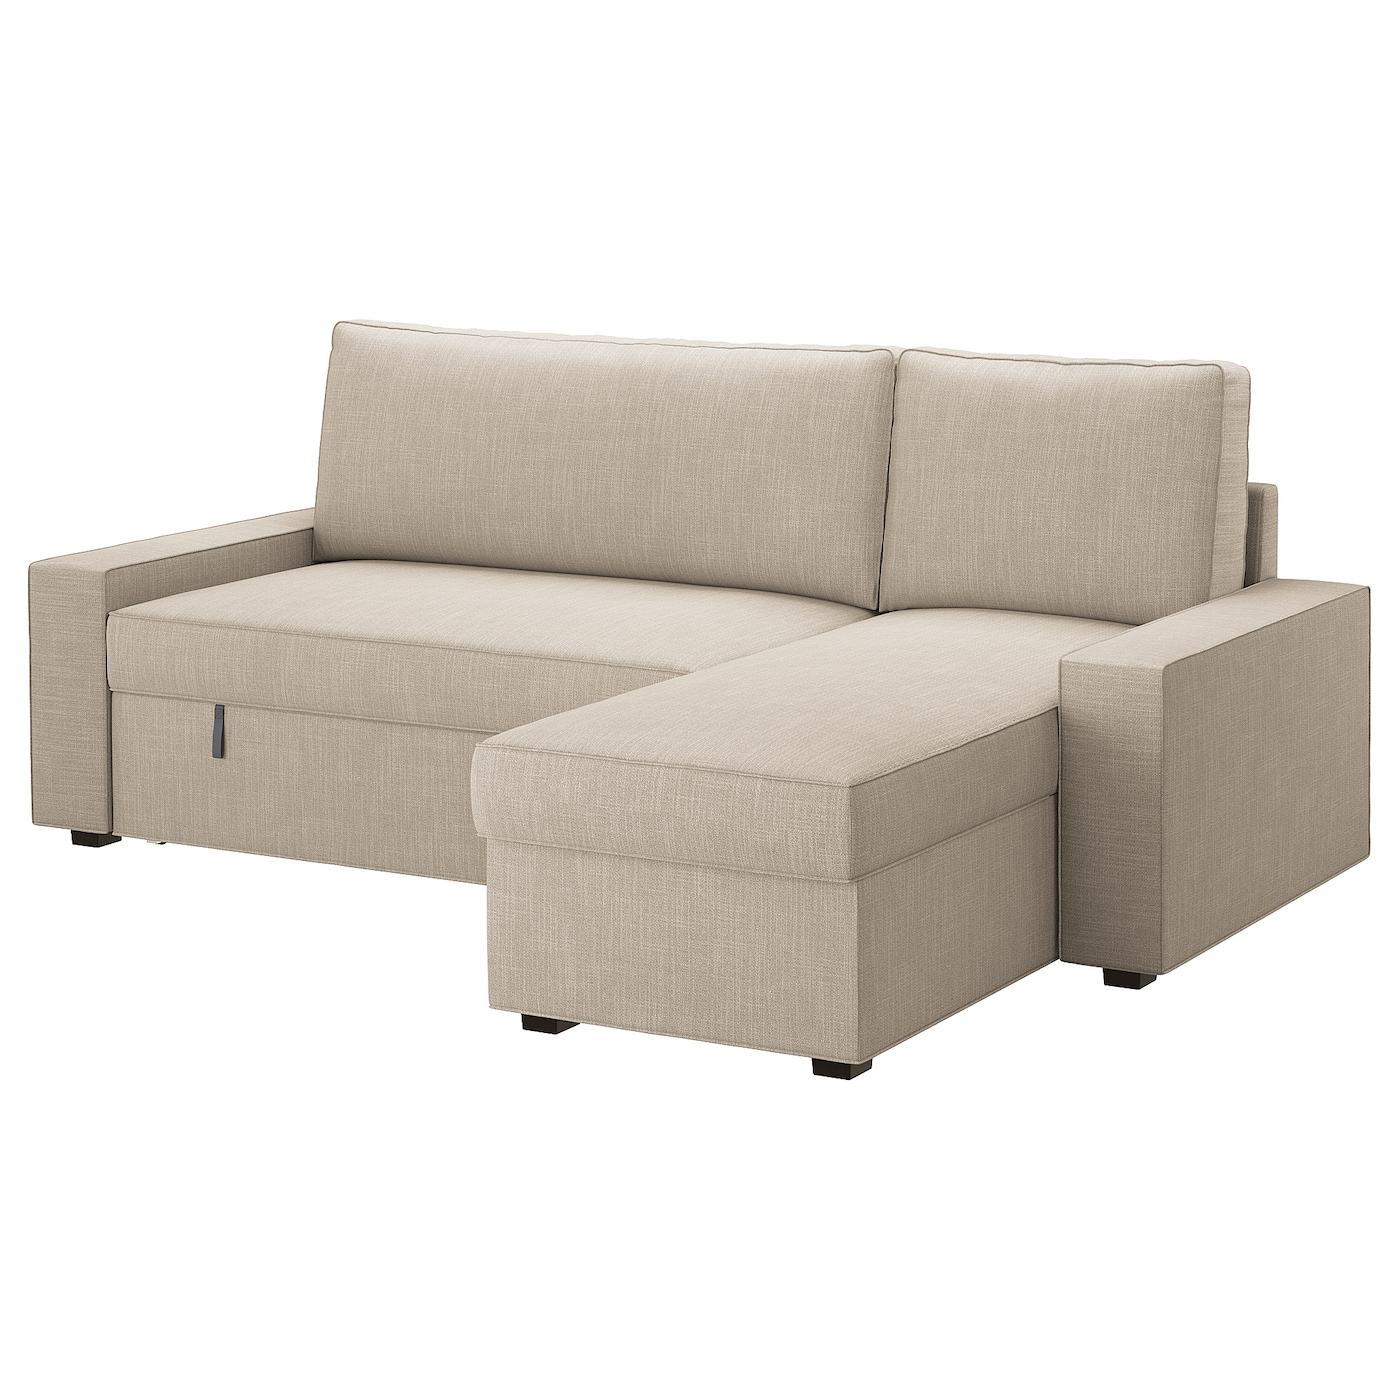 VILASUND Cover sofa bed with chaise longue Hillared beige IKEA